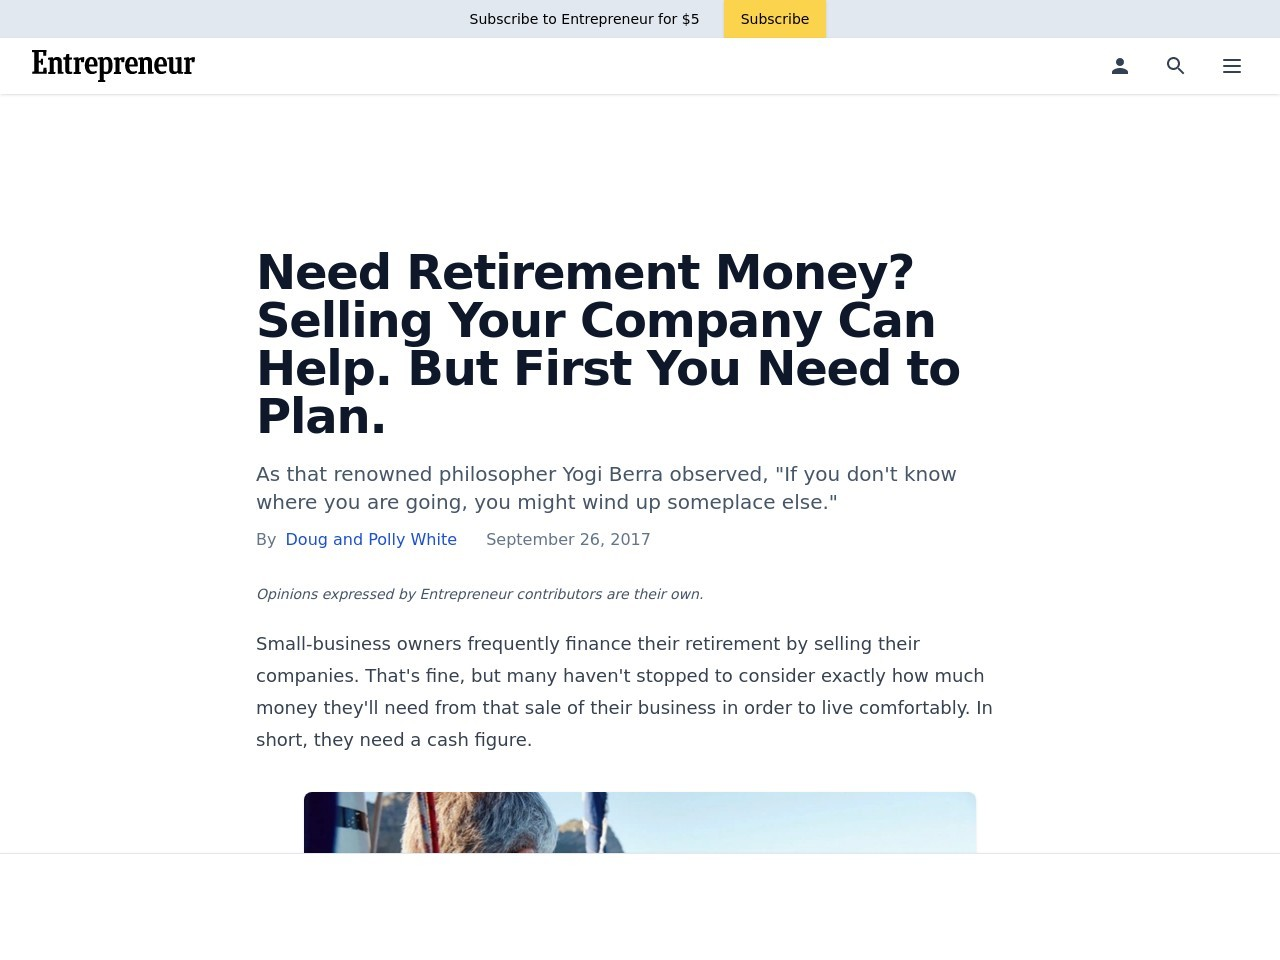 Need Retirement Money? Selling Your Company Can Help. But First You Need to Plan.